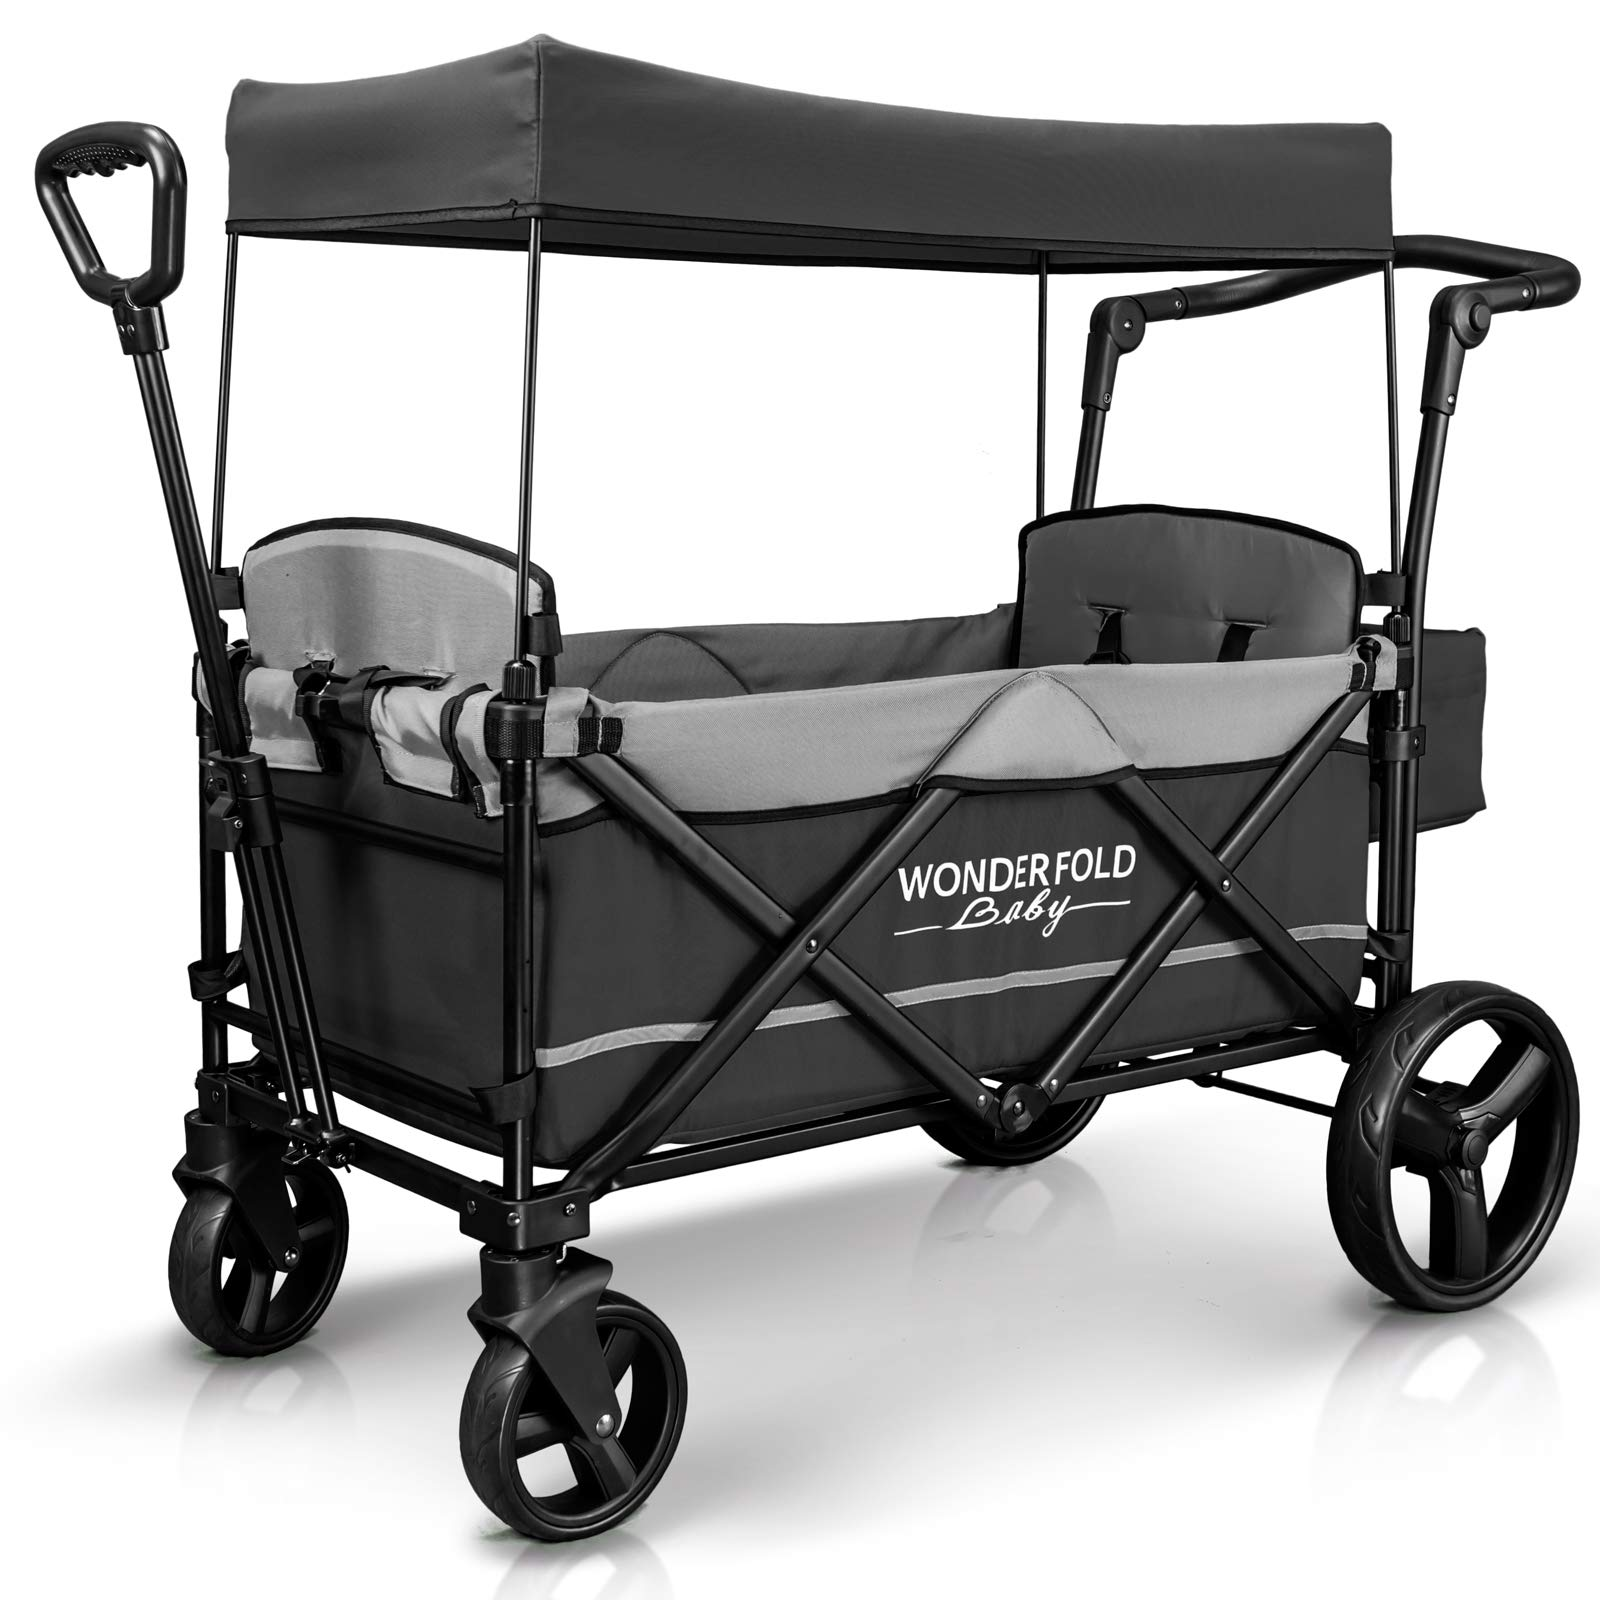 WonderFold Baby XL 2 Passenger Push Pull Twin Double Stroller Wagon with Adjustable Handle Bar, Removable Canopy, Safety Seats with 5-Point Harness, One-Step Foot Brake, Safety Reflective Strip (Gray)